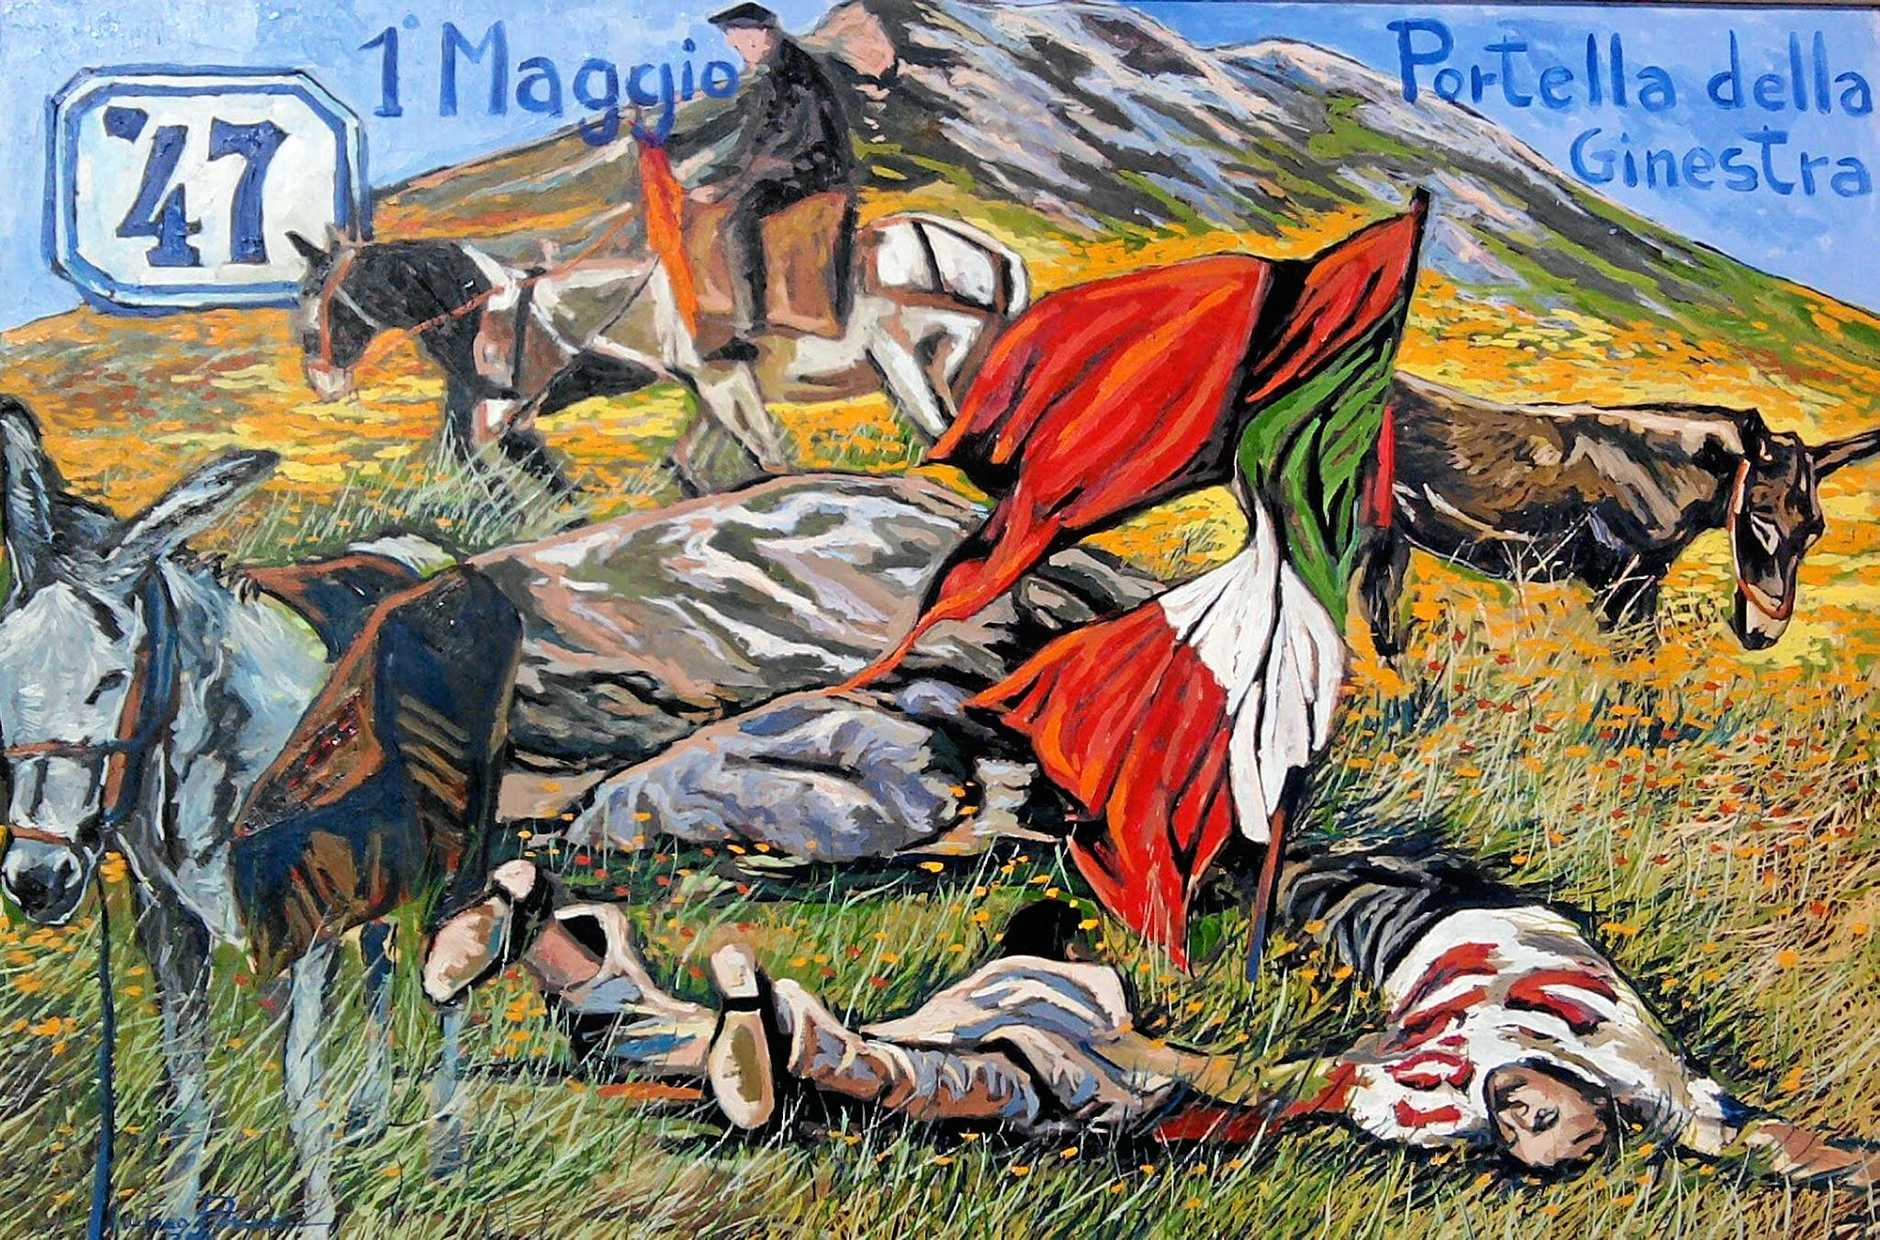 Postcard remembering the murder of workers on May 1, 1947 in Sicily.